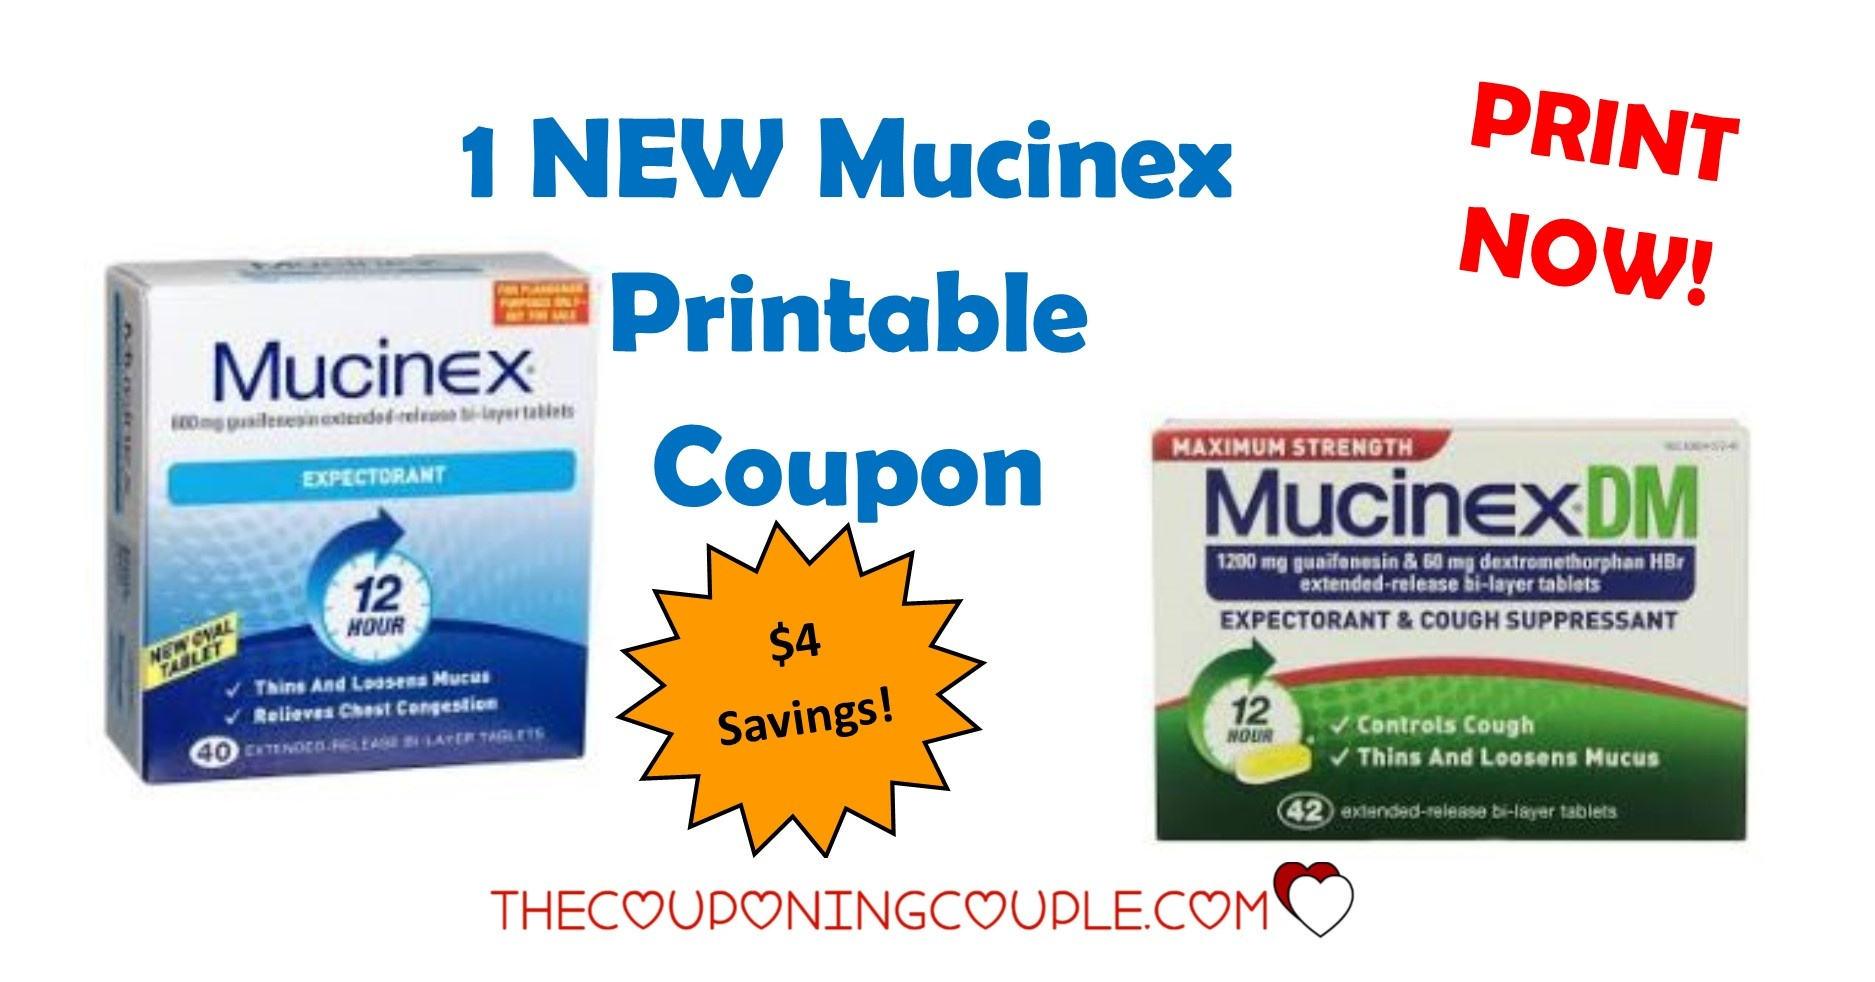 Save $4 On The New Mucinex Printable Coupon ~ Print Now! - Free Printable Walmart Coupons